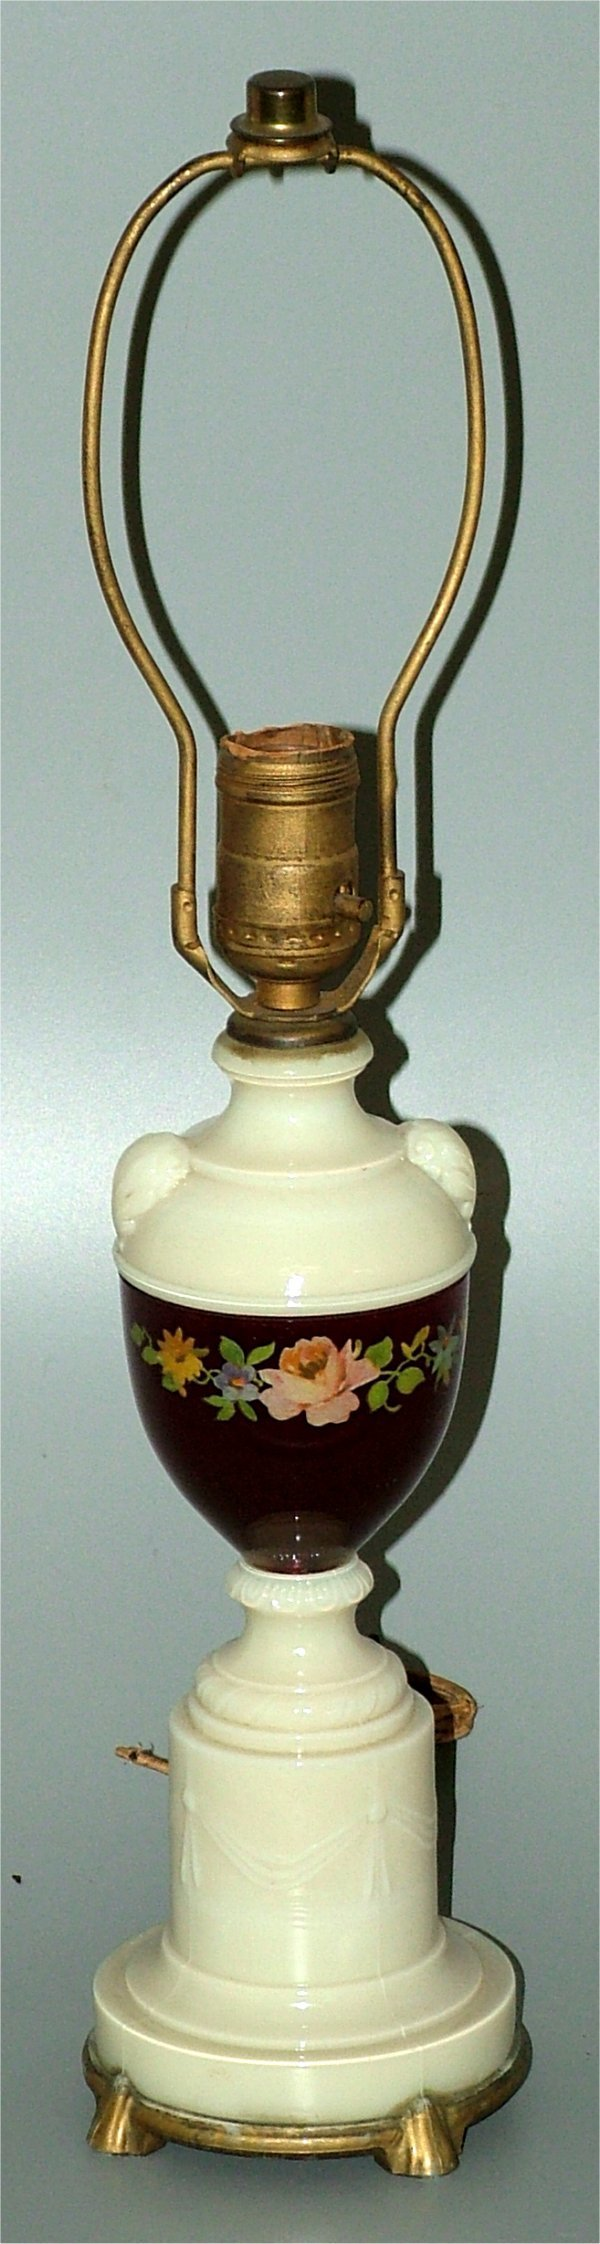 15012: OPAQUE GLASS TABLE LAMP W/REVERSE DECORATED FLOR